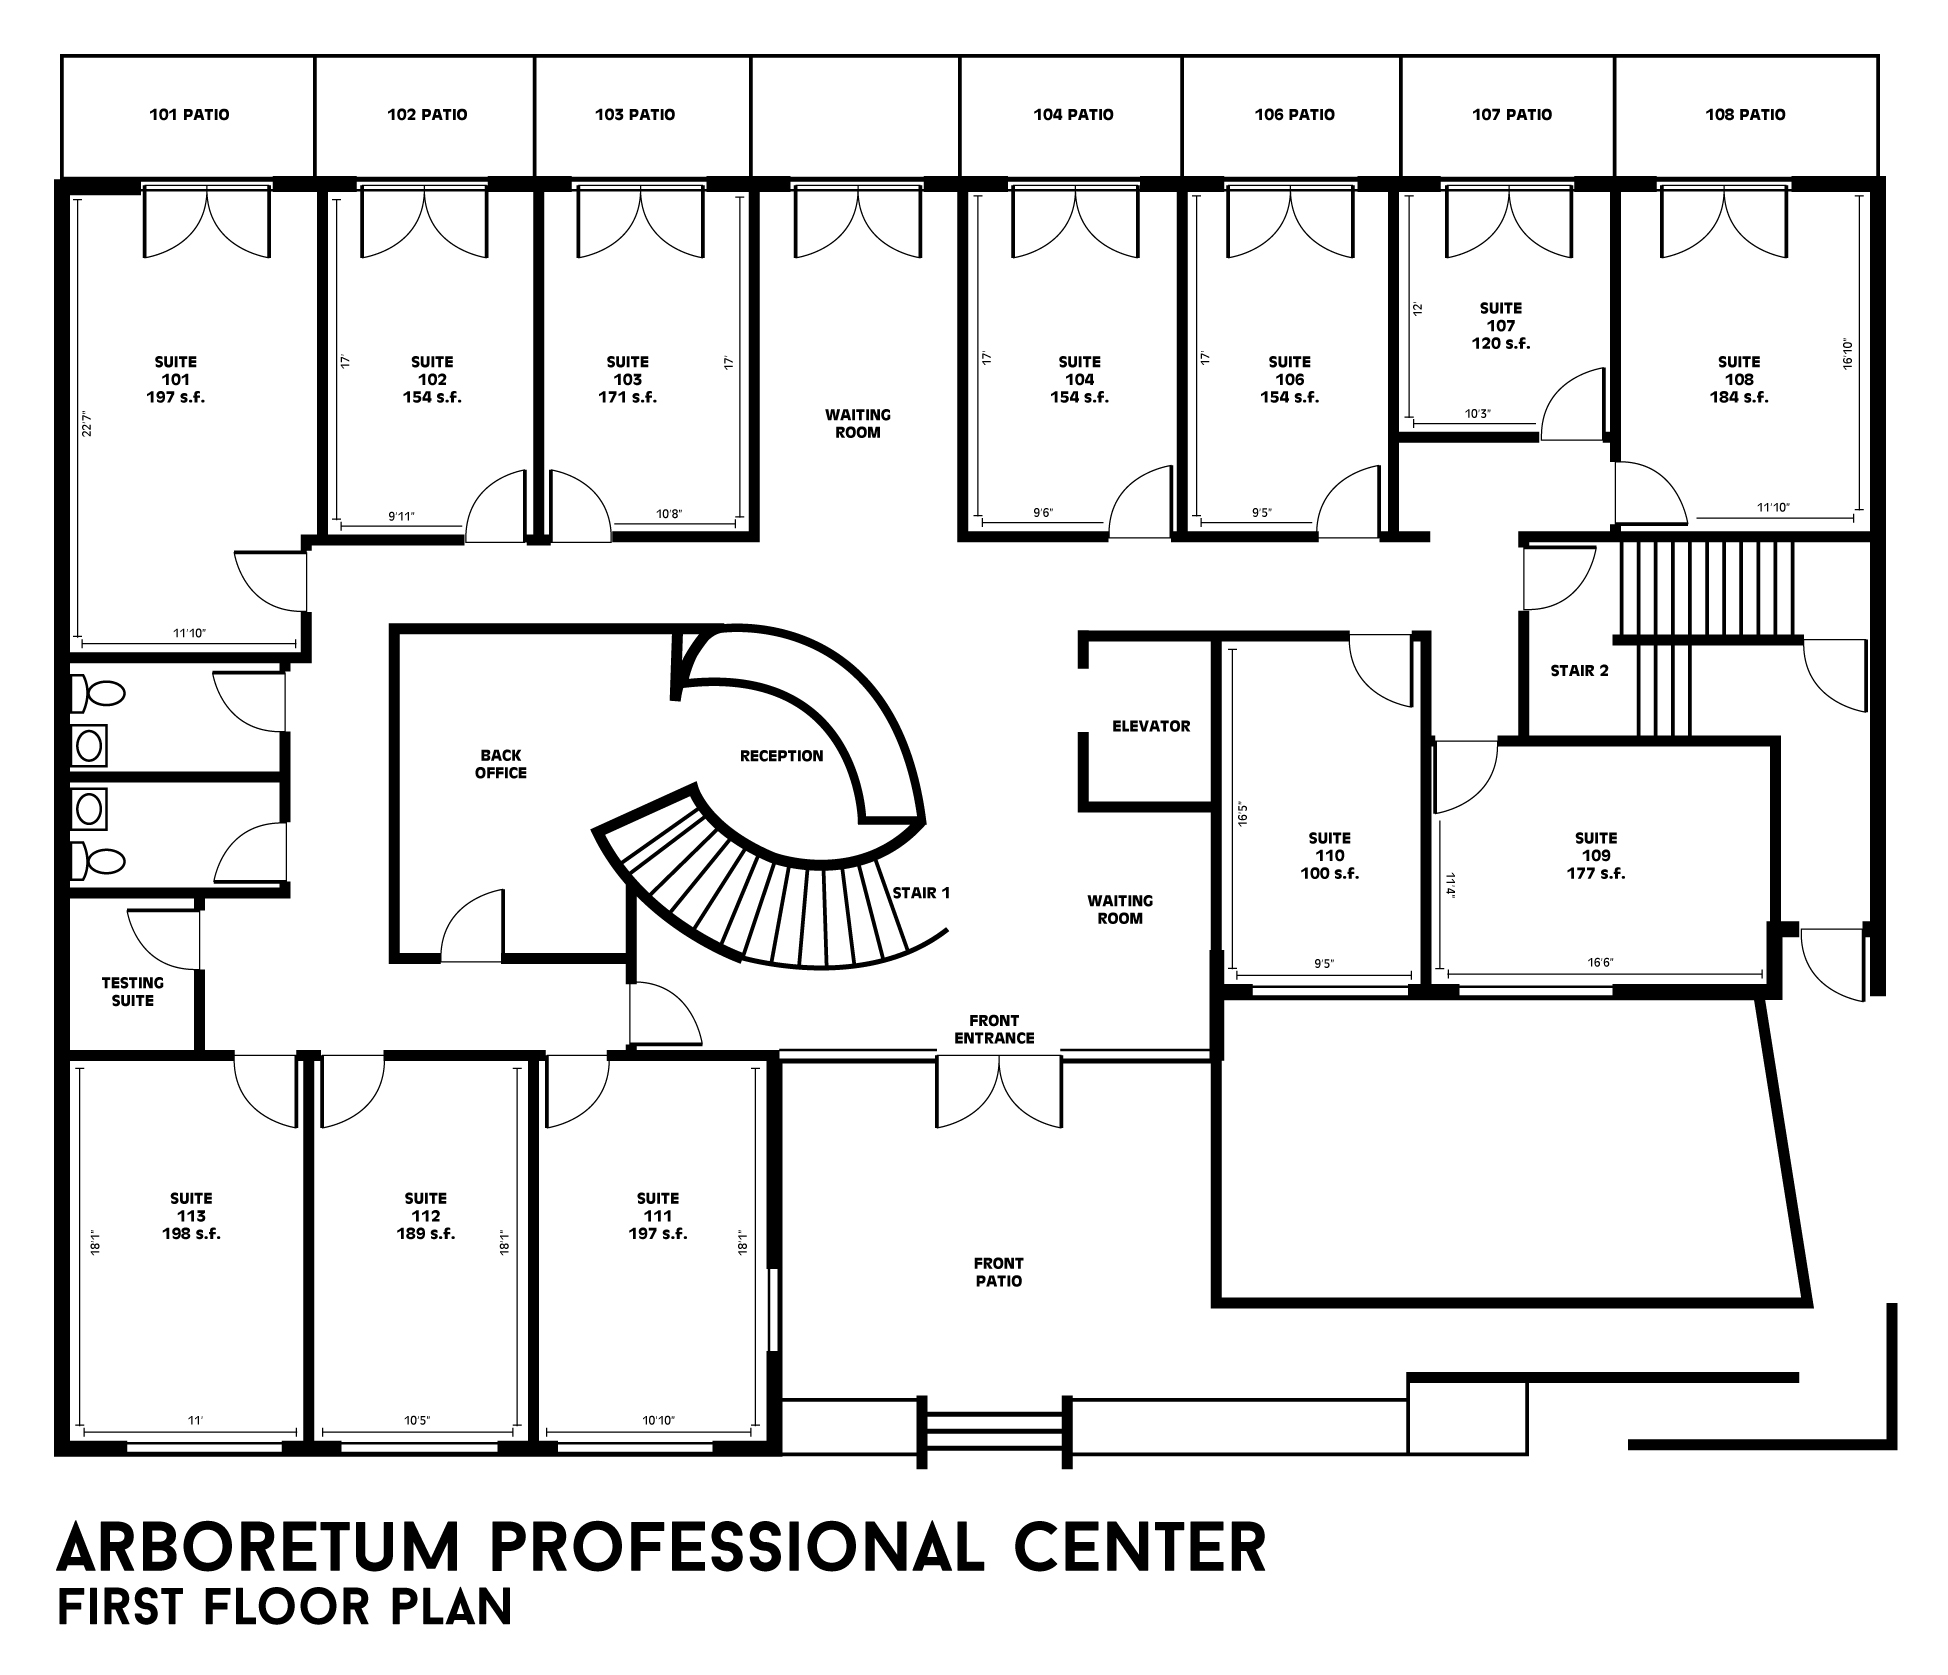 Building floor plans arboretum professional center for 2 floor building plan